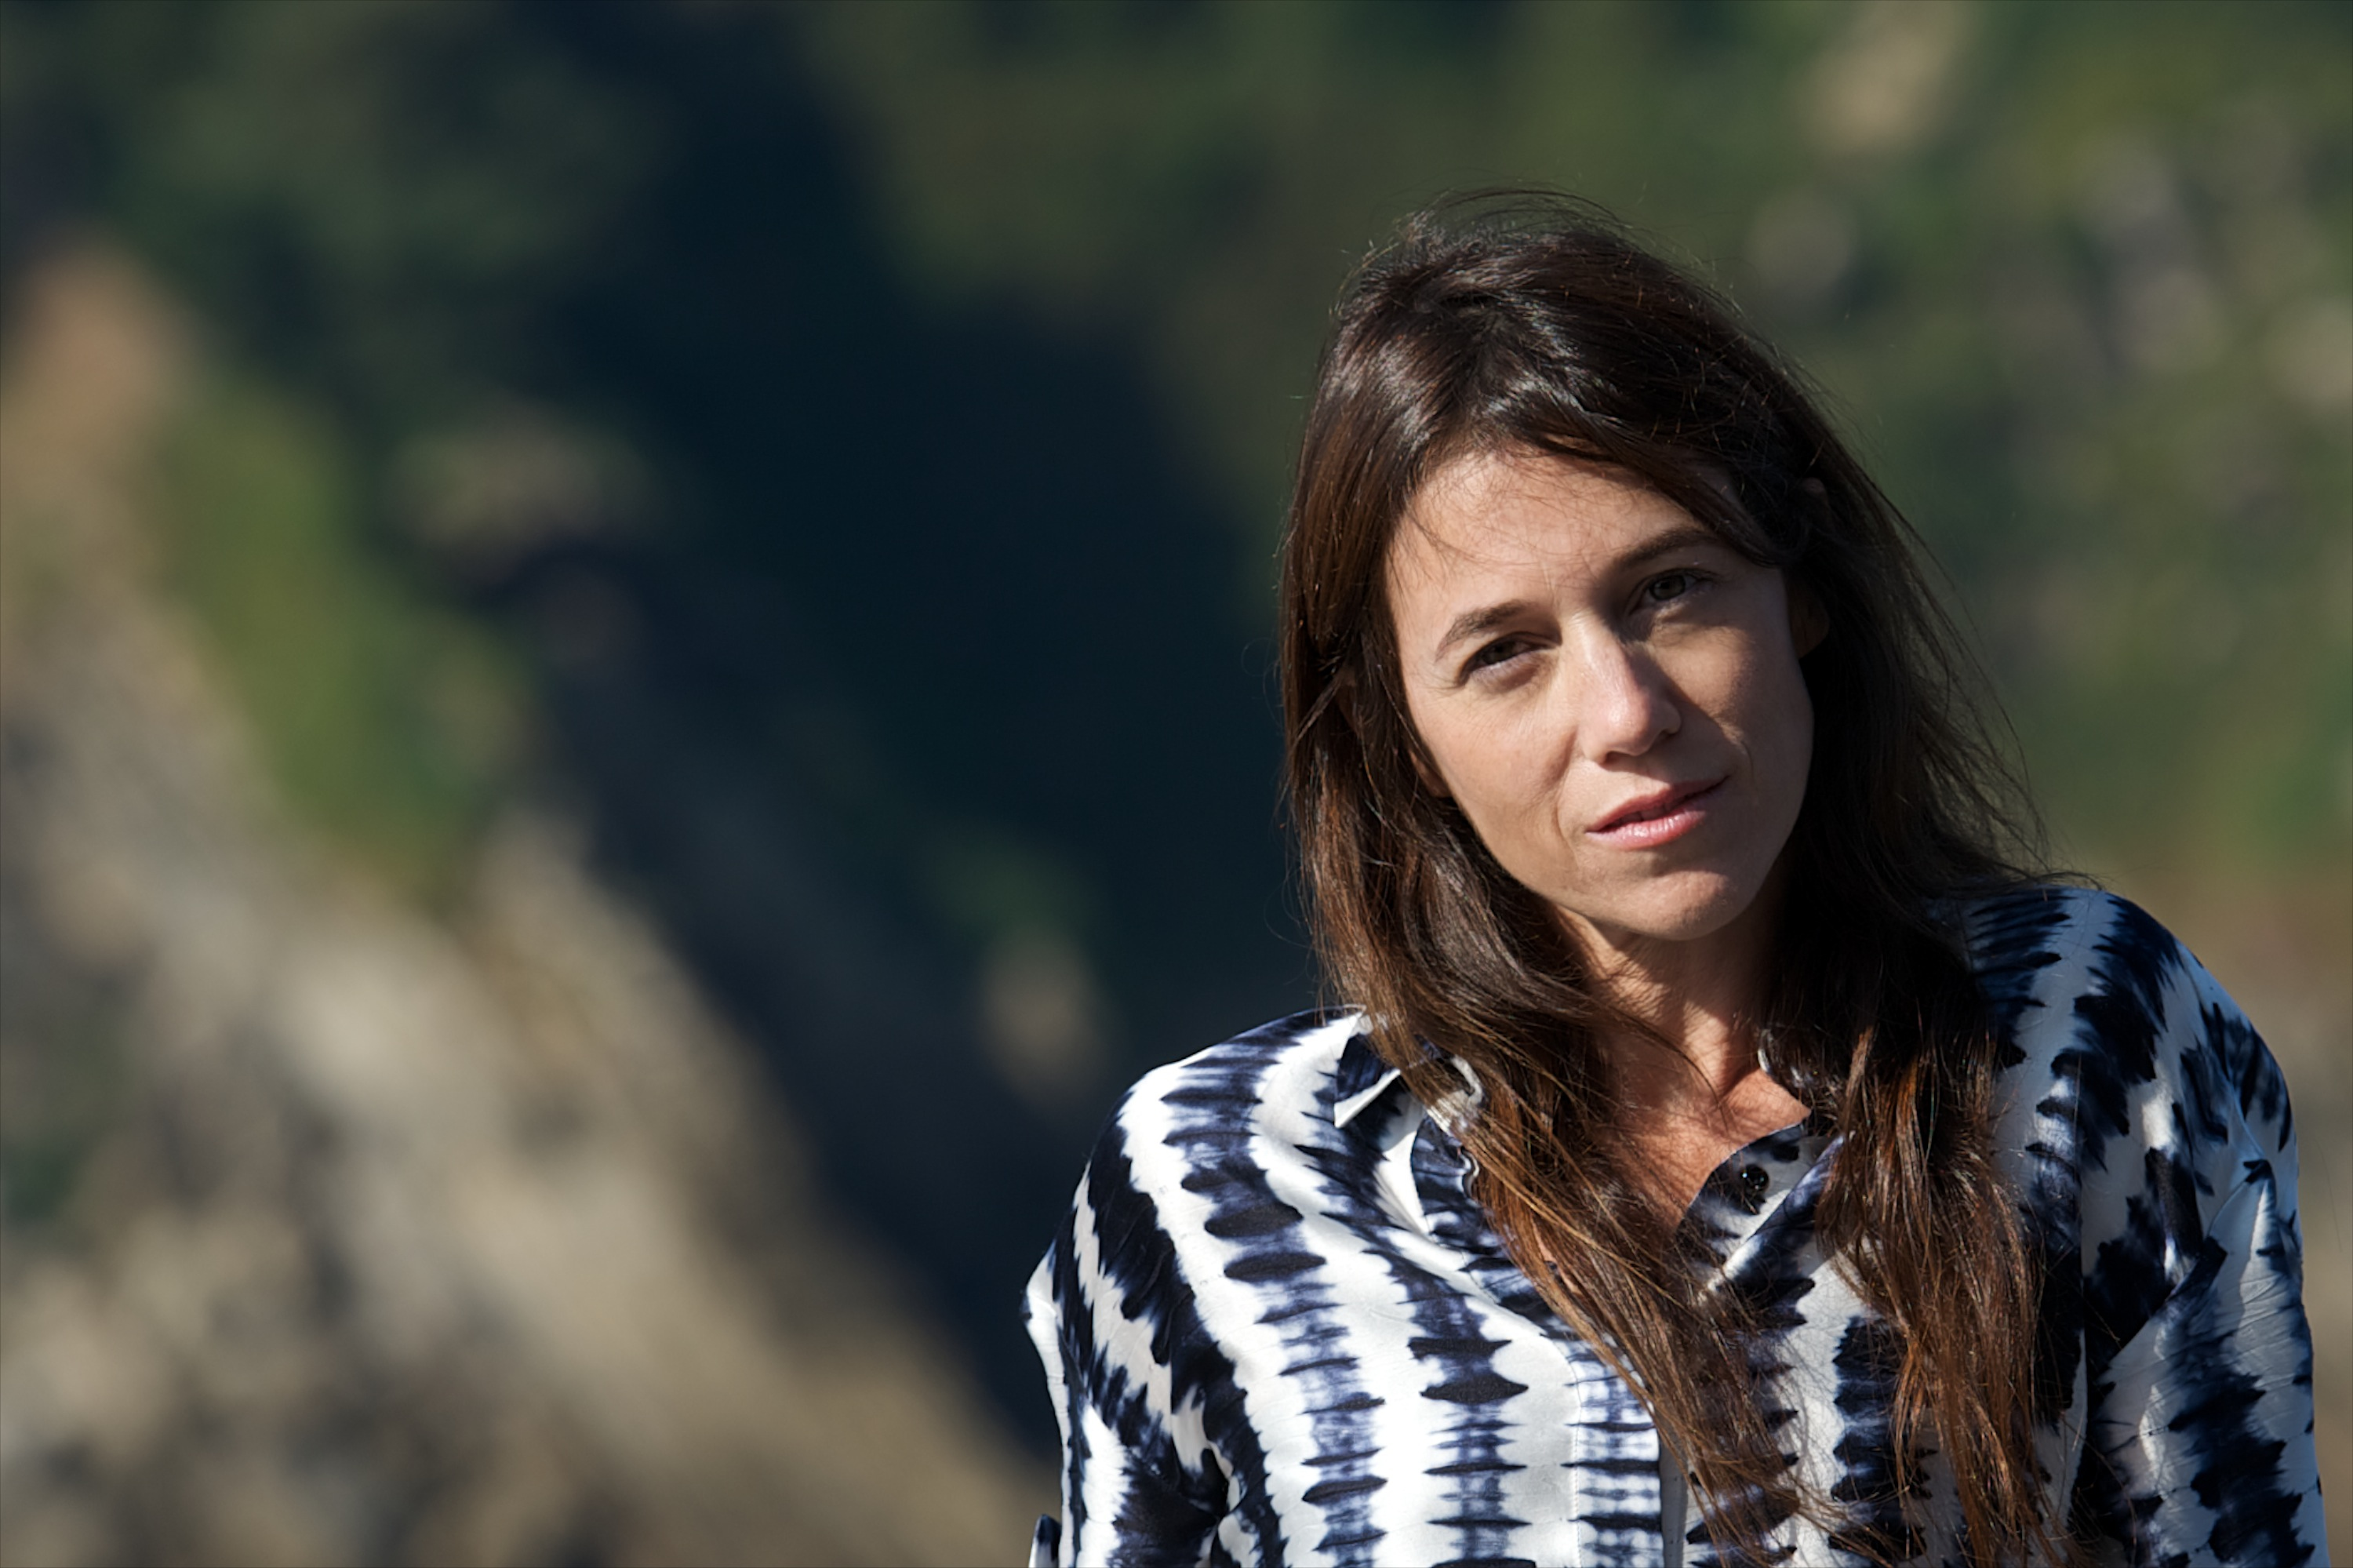 SAN SEBASTIAN, SPAIN - SEPTEMBER 27:  Actress Charlotte Gainsbourg attends the 'Samba' photocall at the Aquarium during the 6